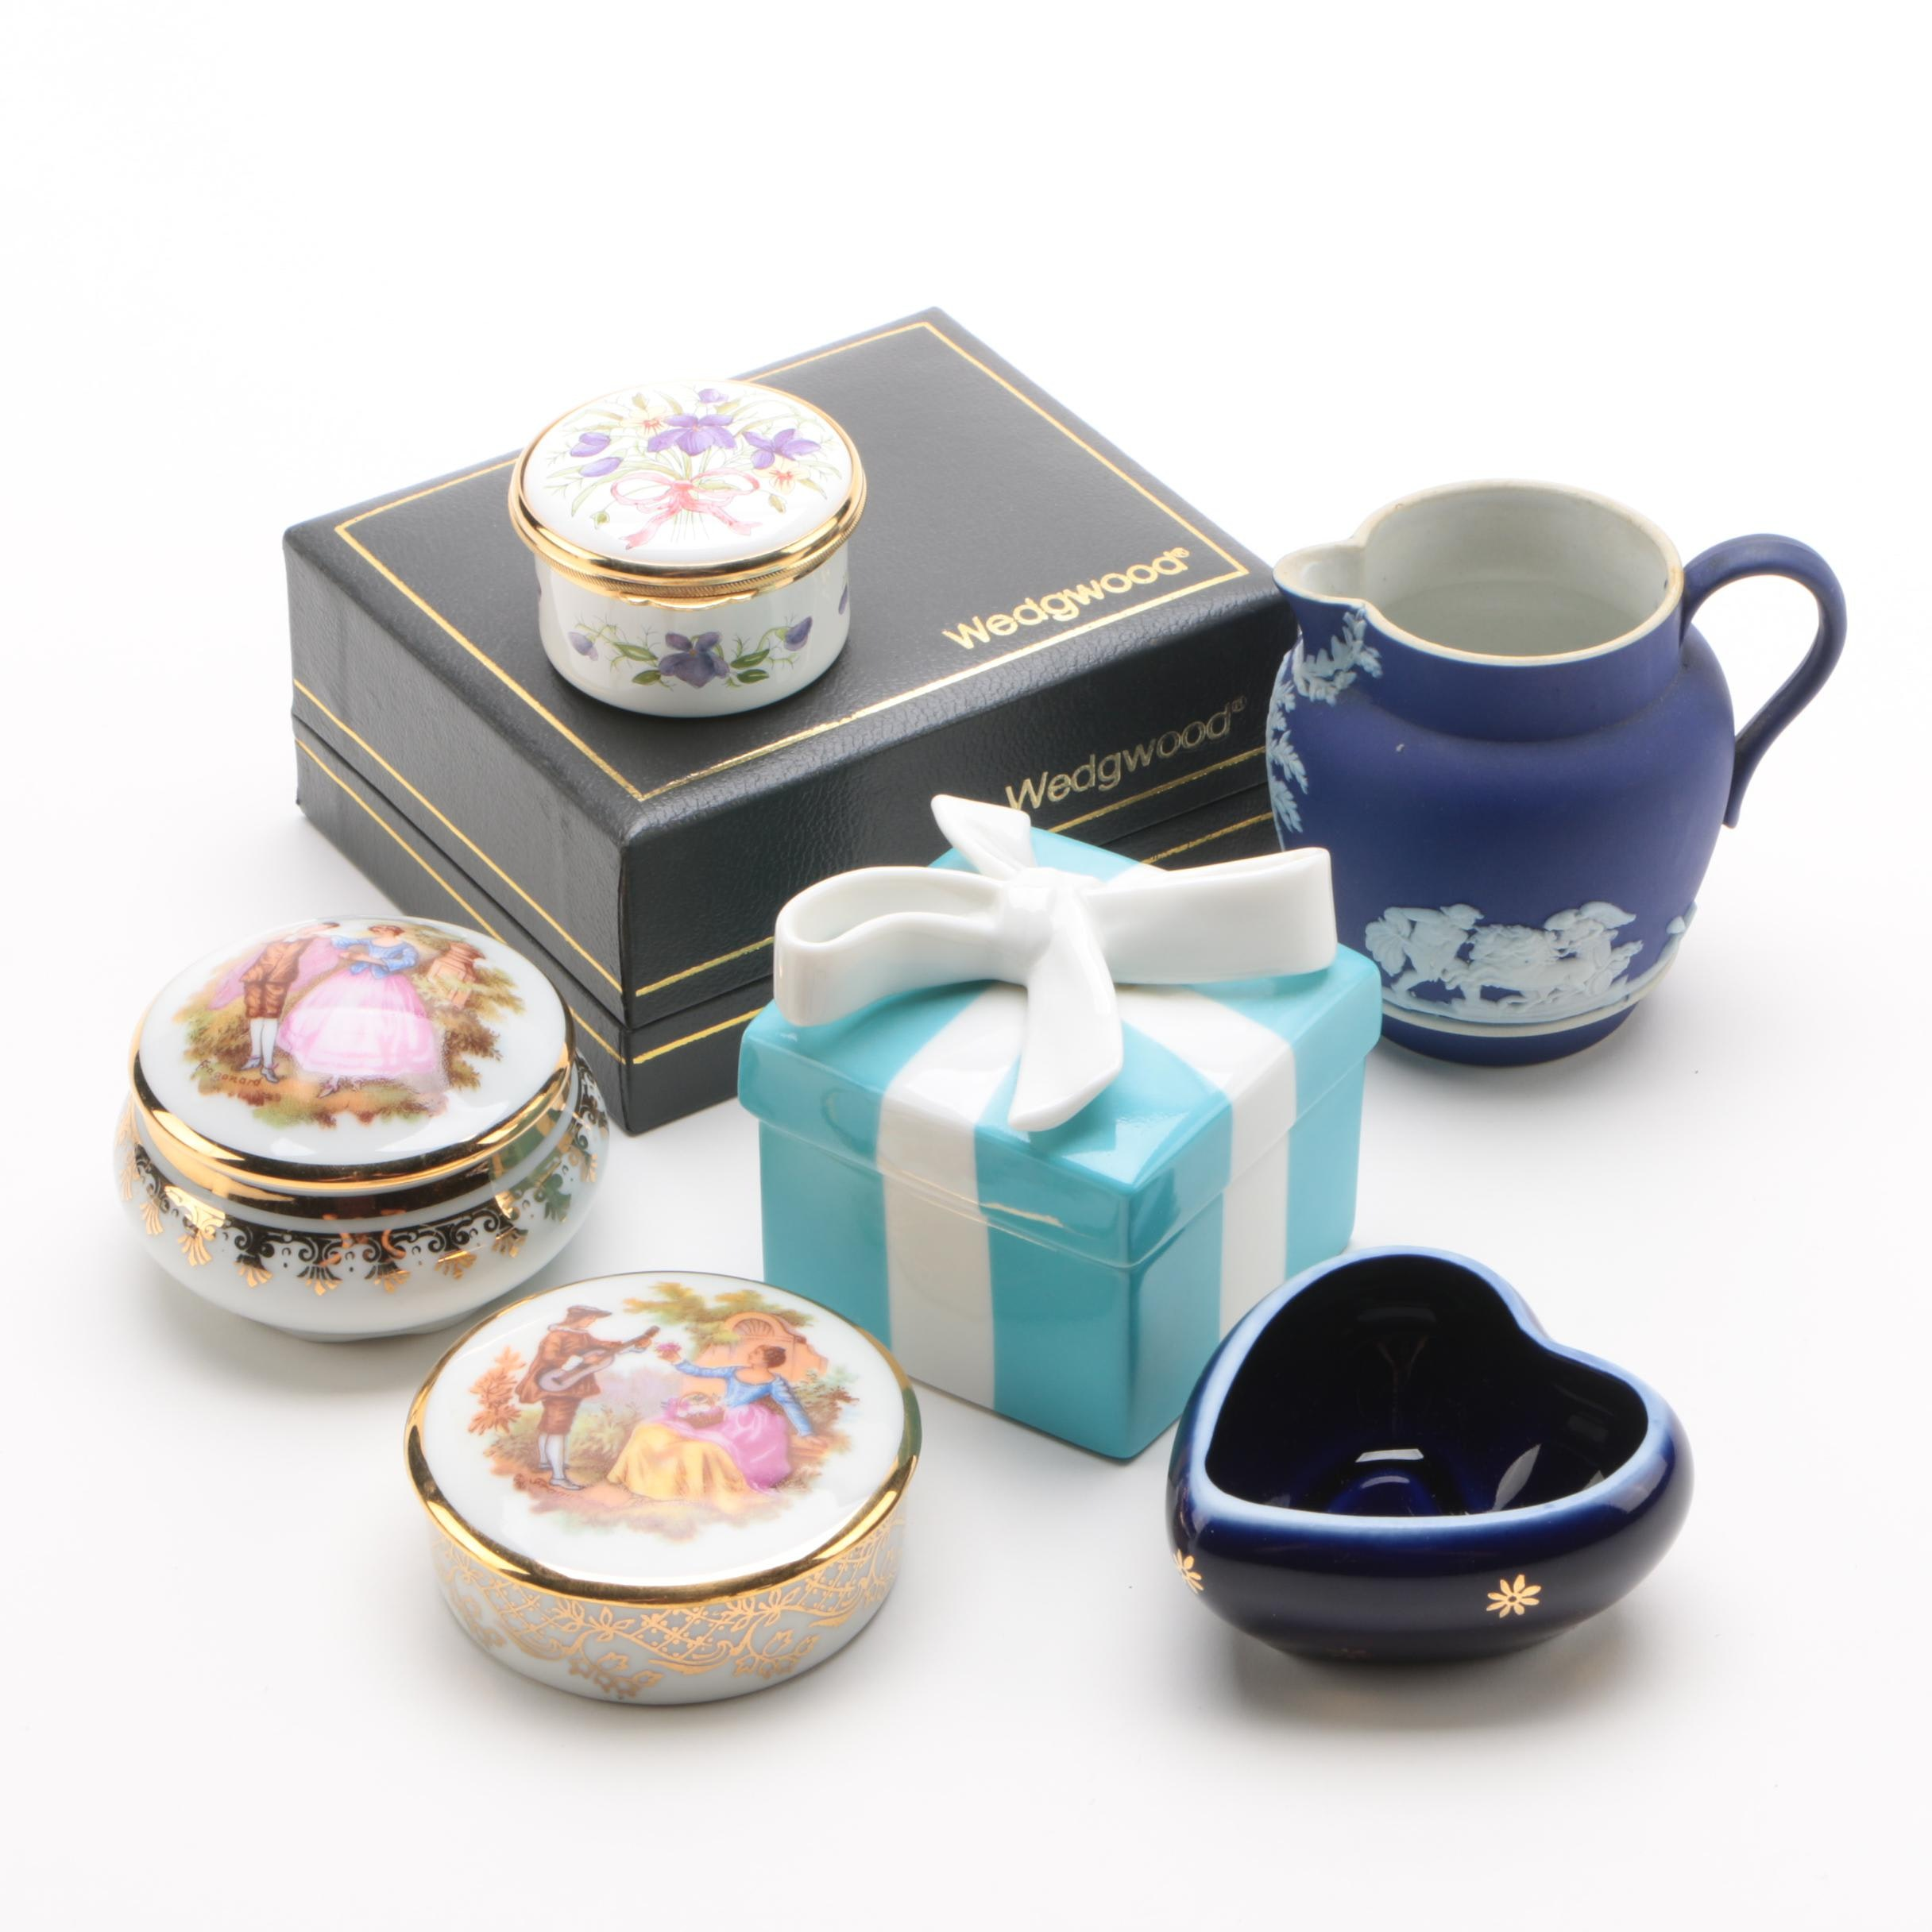 Porcelain Trinket Boxes and Decor Including Limoges, Tiffany & Co. and Wedgwood